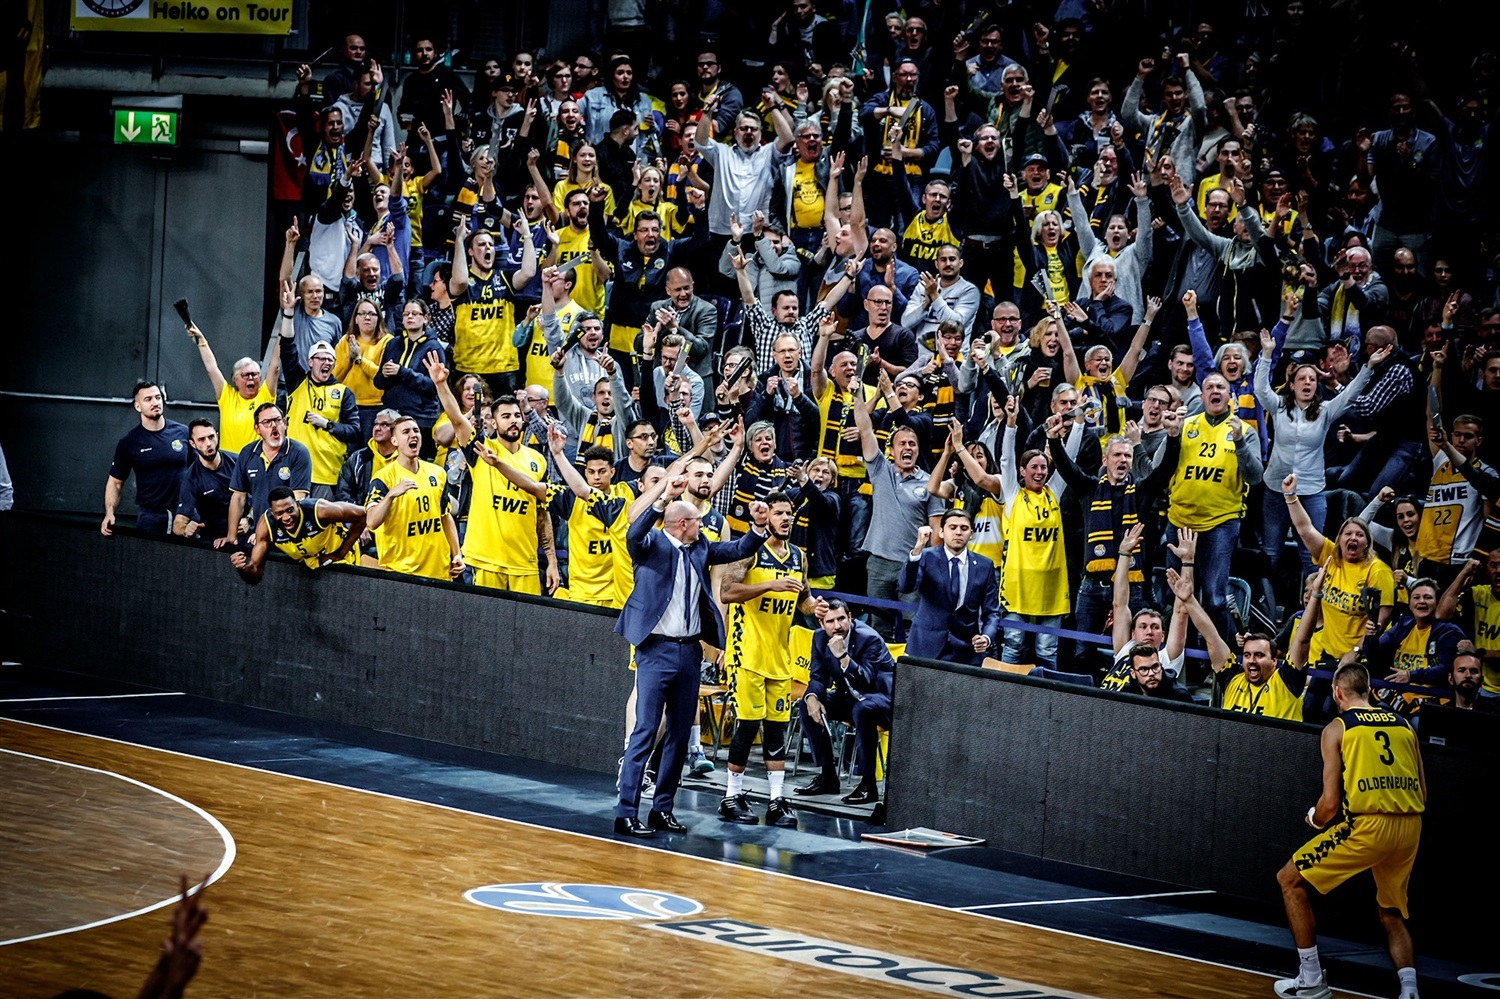 EWE Baskets Oldenburg celebrates (photo Ulf Duda - fotoduda.de) - EC19